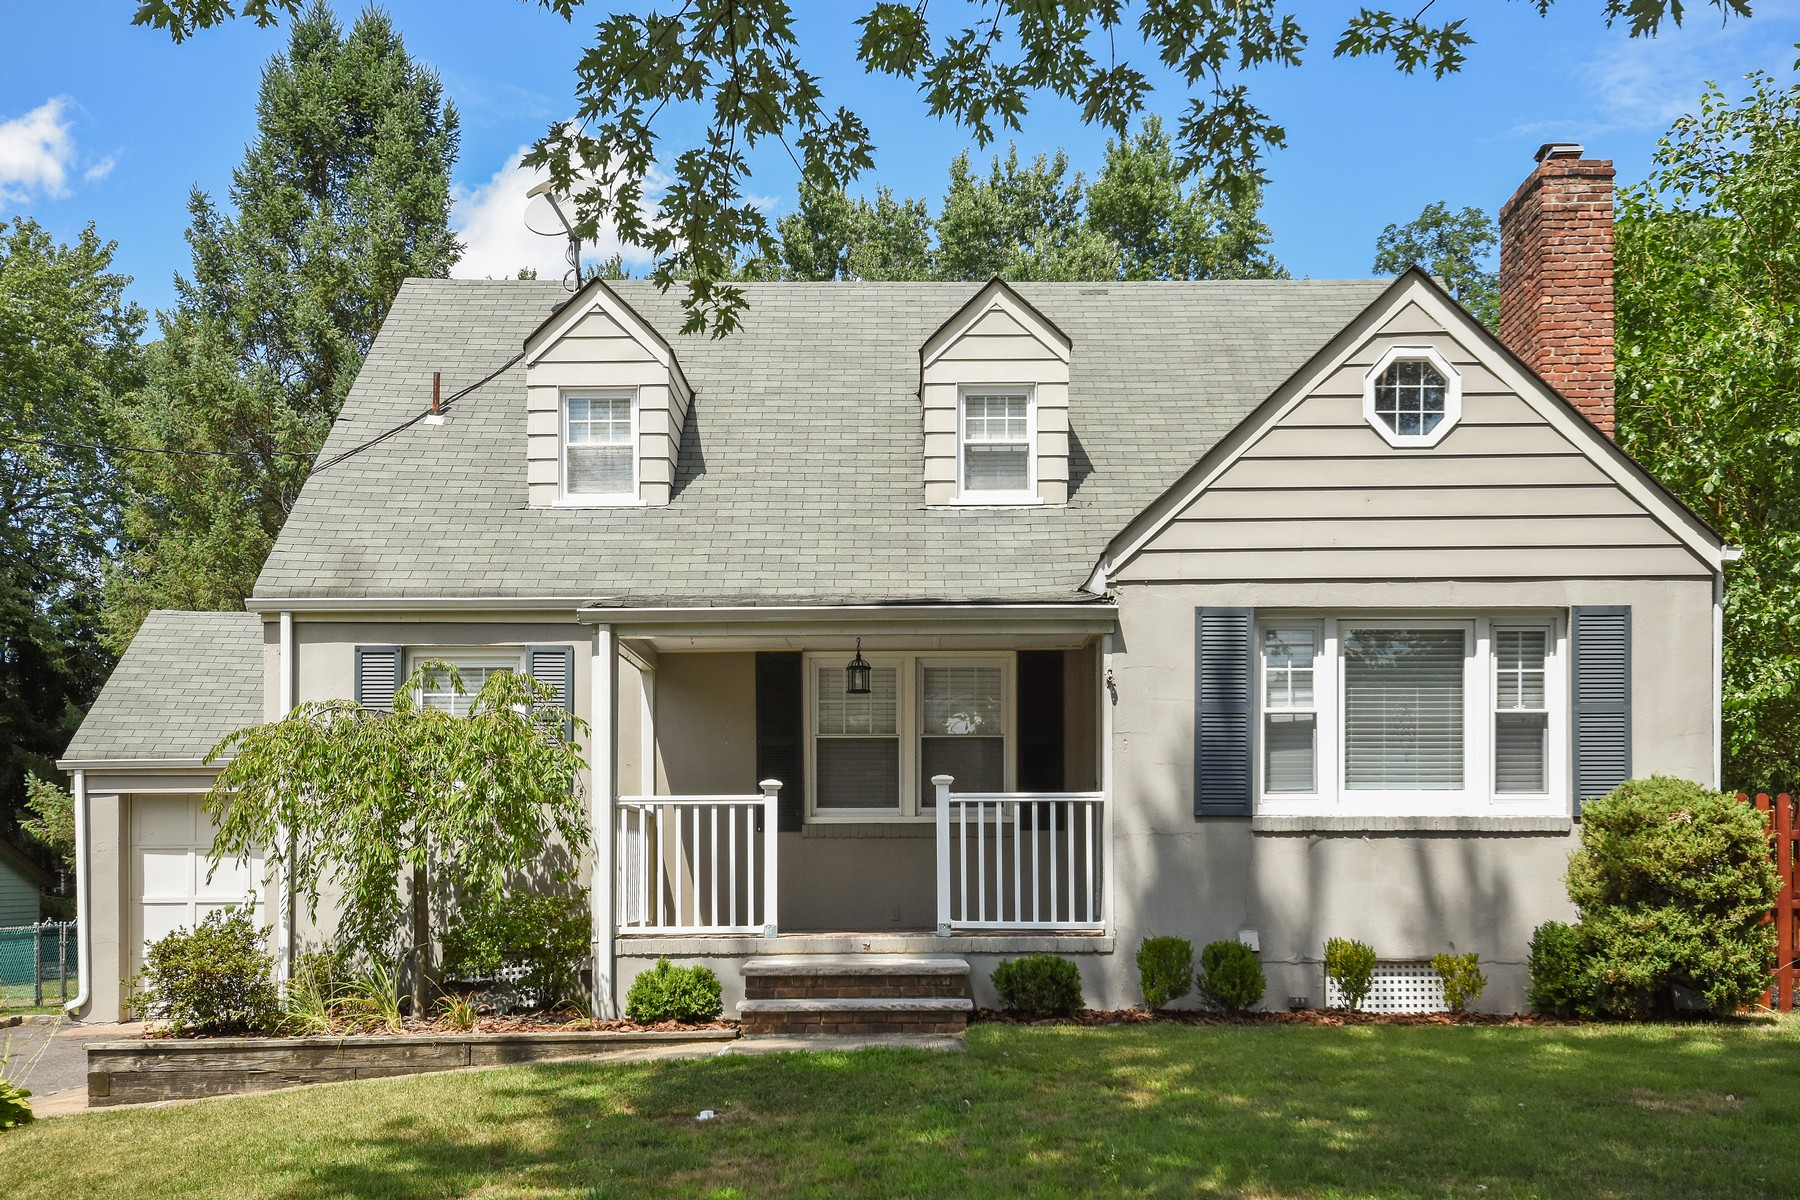 Single Family Homes for Active at Wonderful Cape Cod 152 Franklin Street Morristown, New Jersey 07960 United States